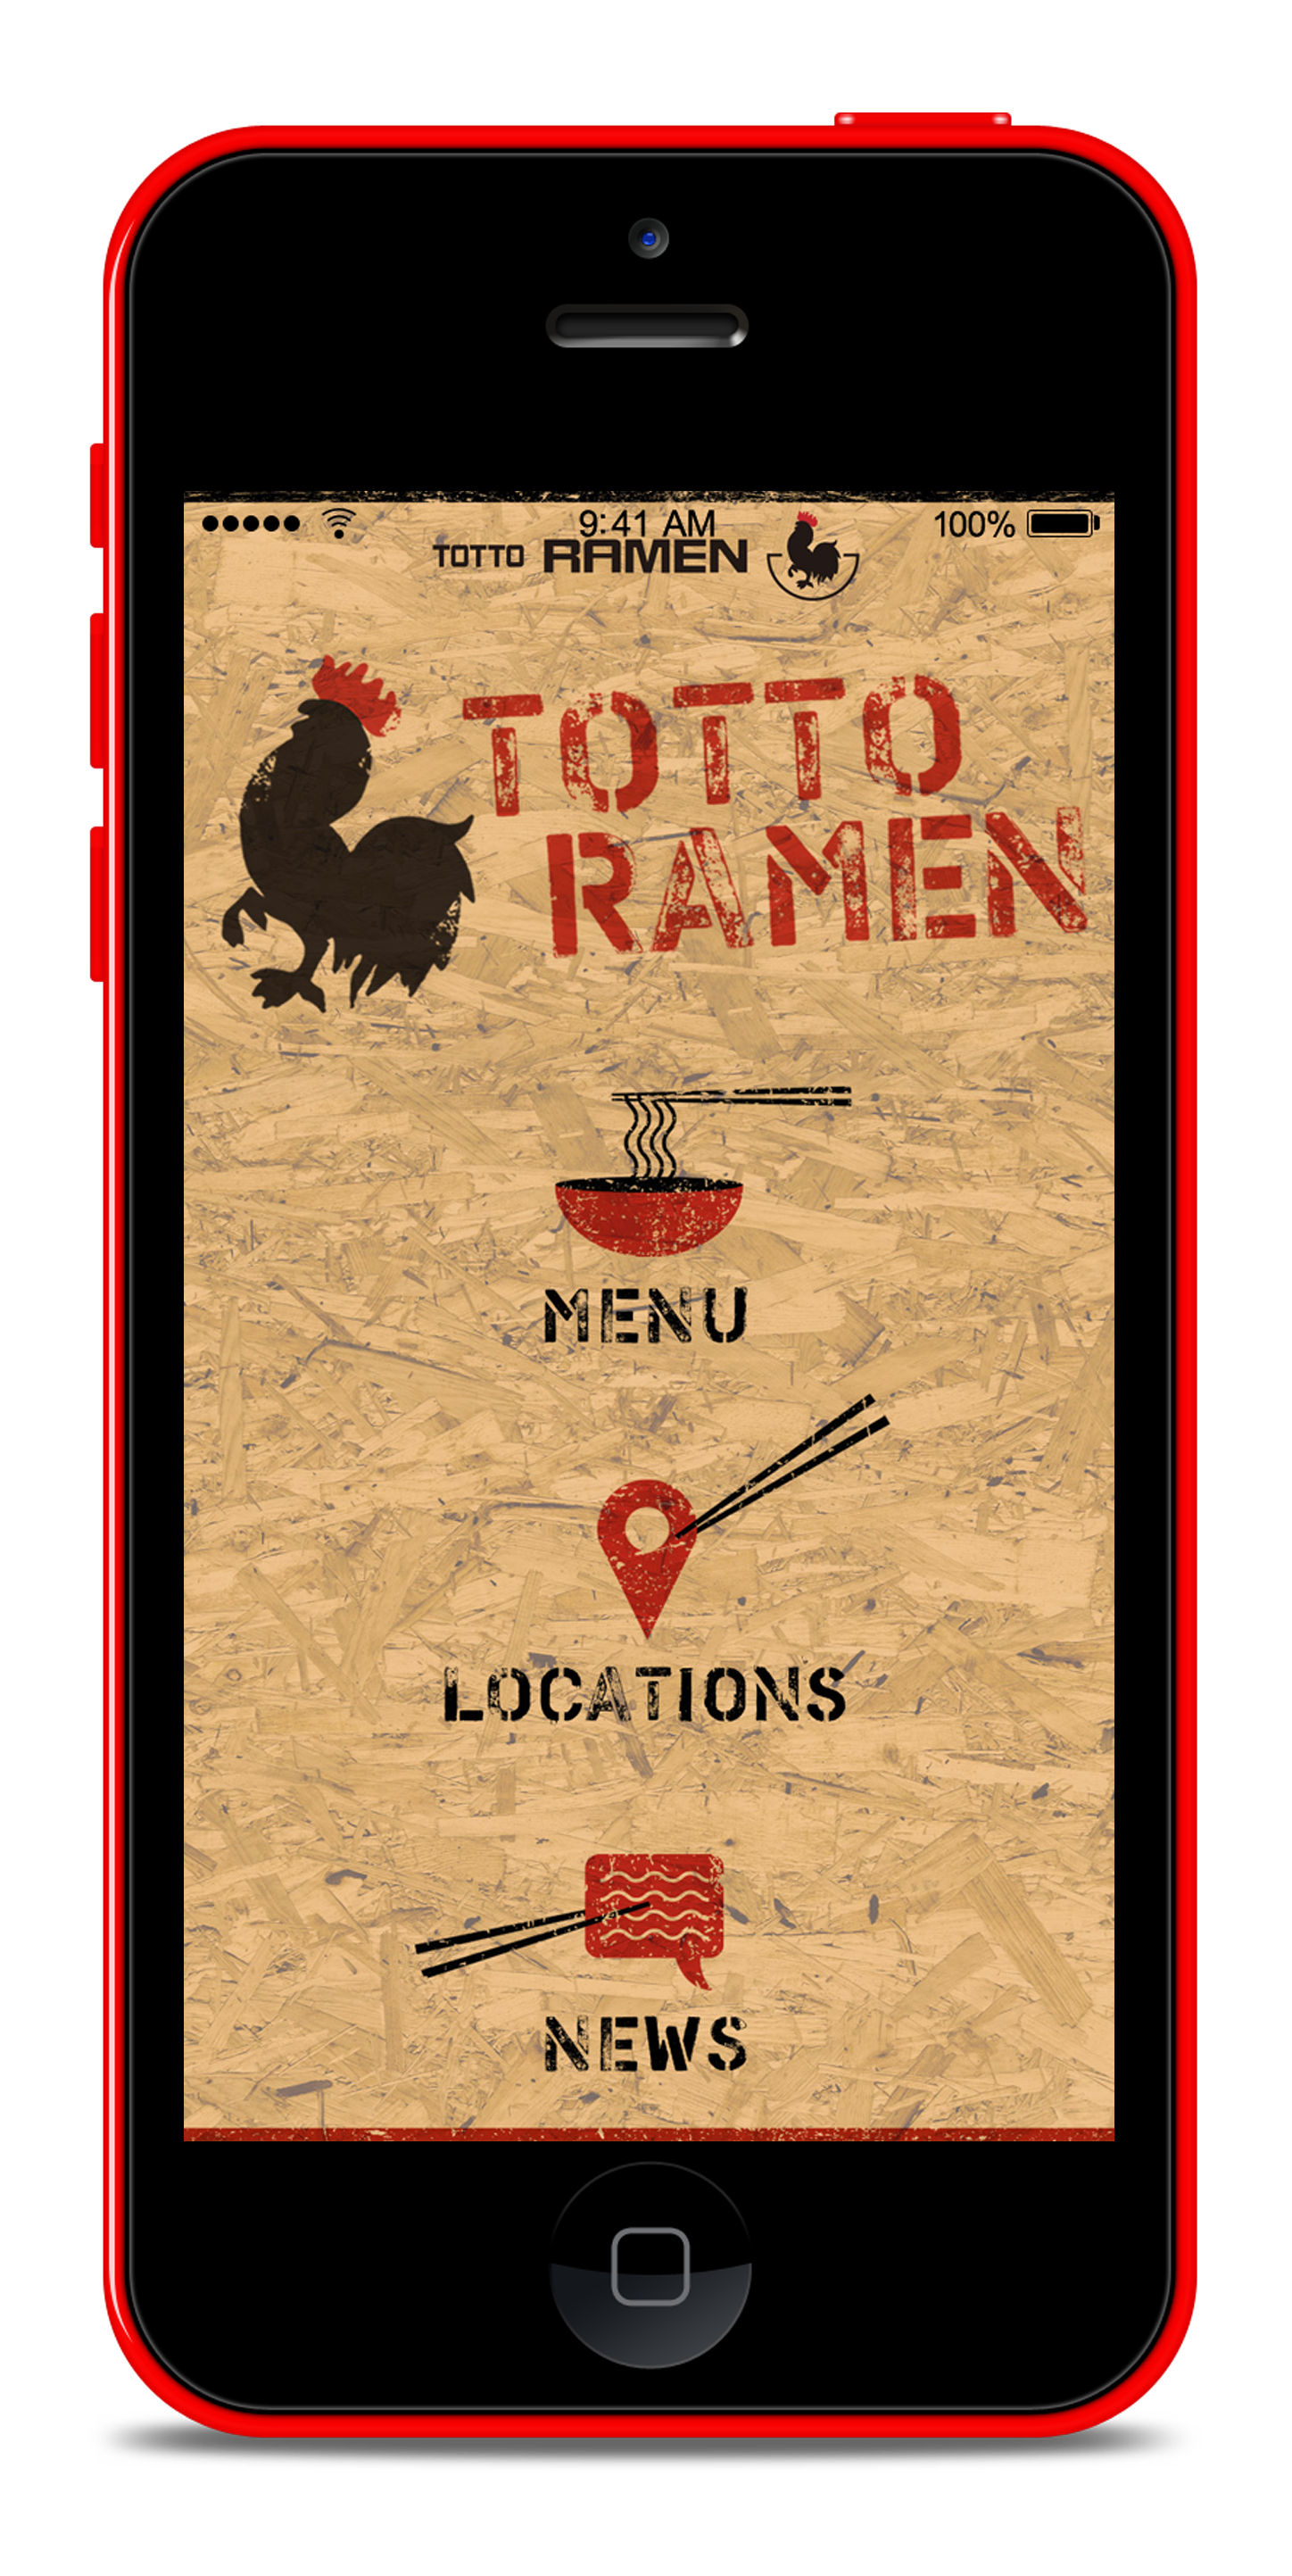 Interactive_Totto-phone1 crop.png